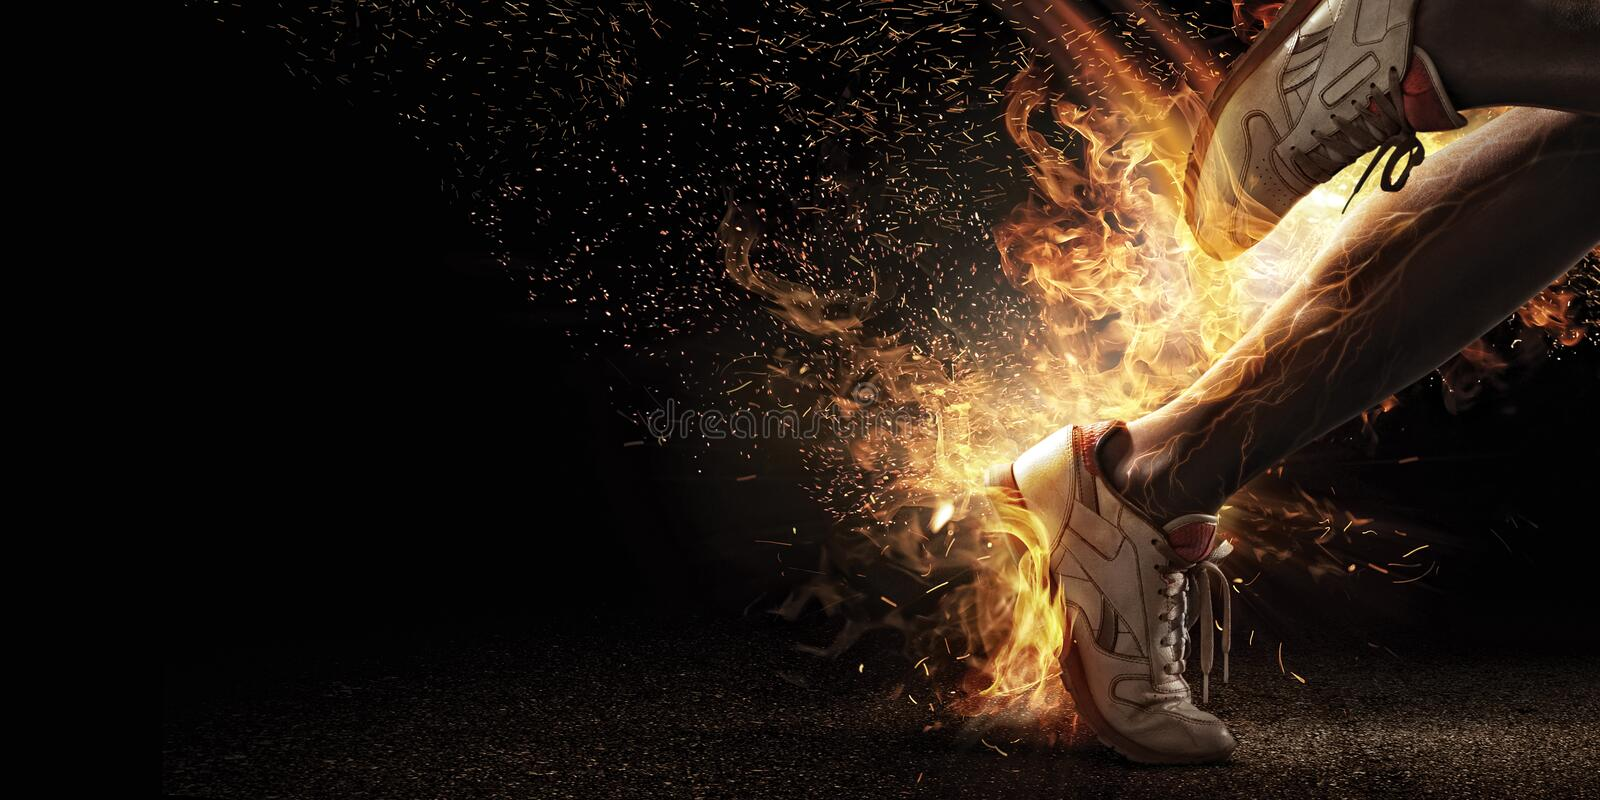 Fire and energy stock image